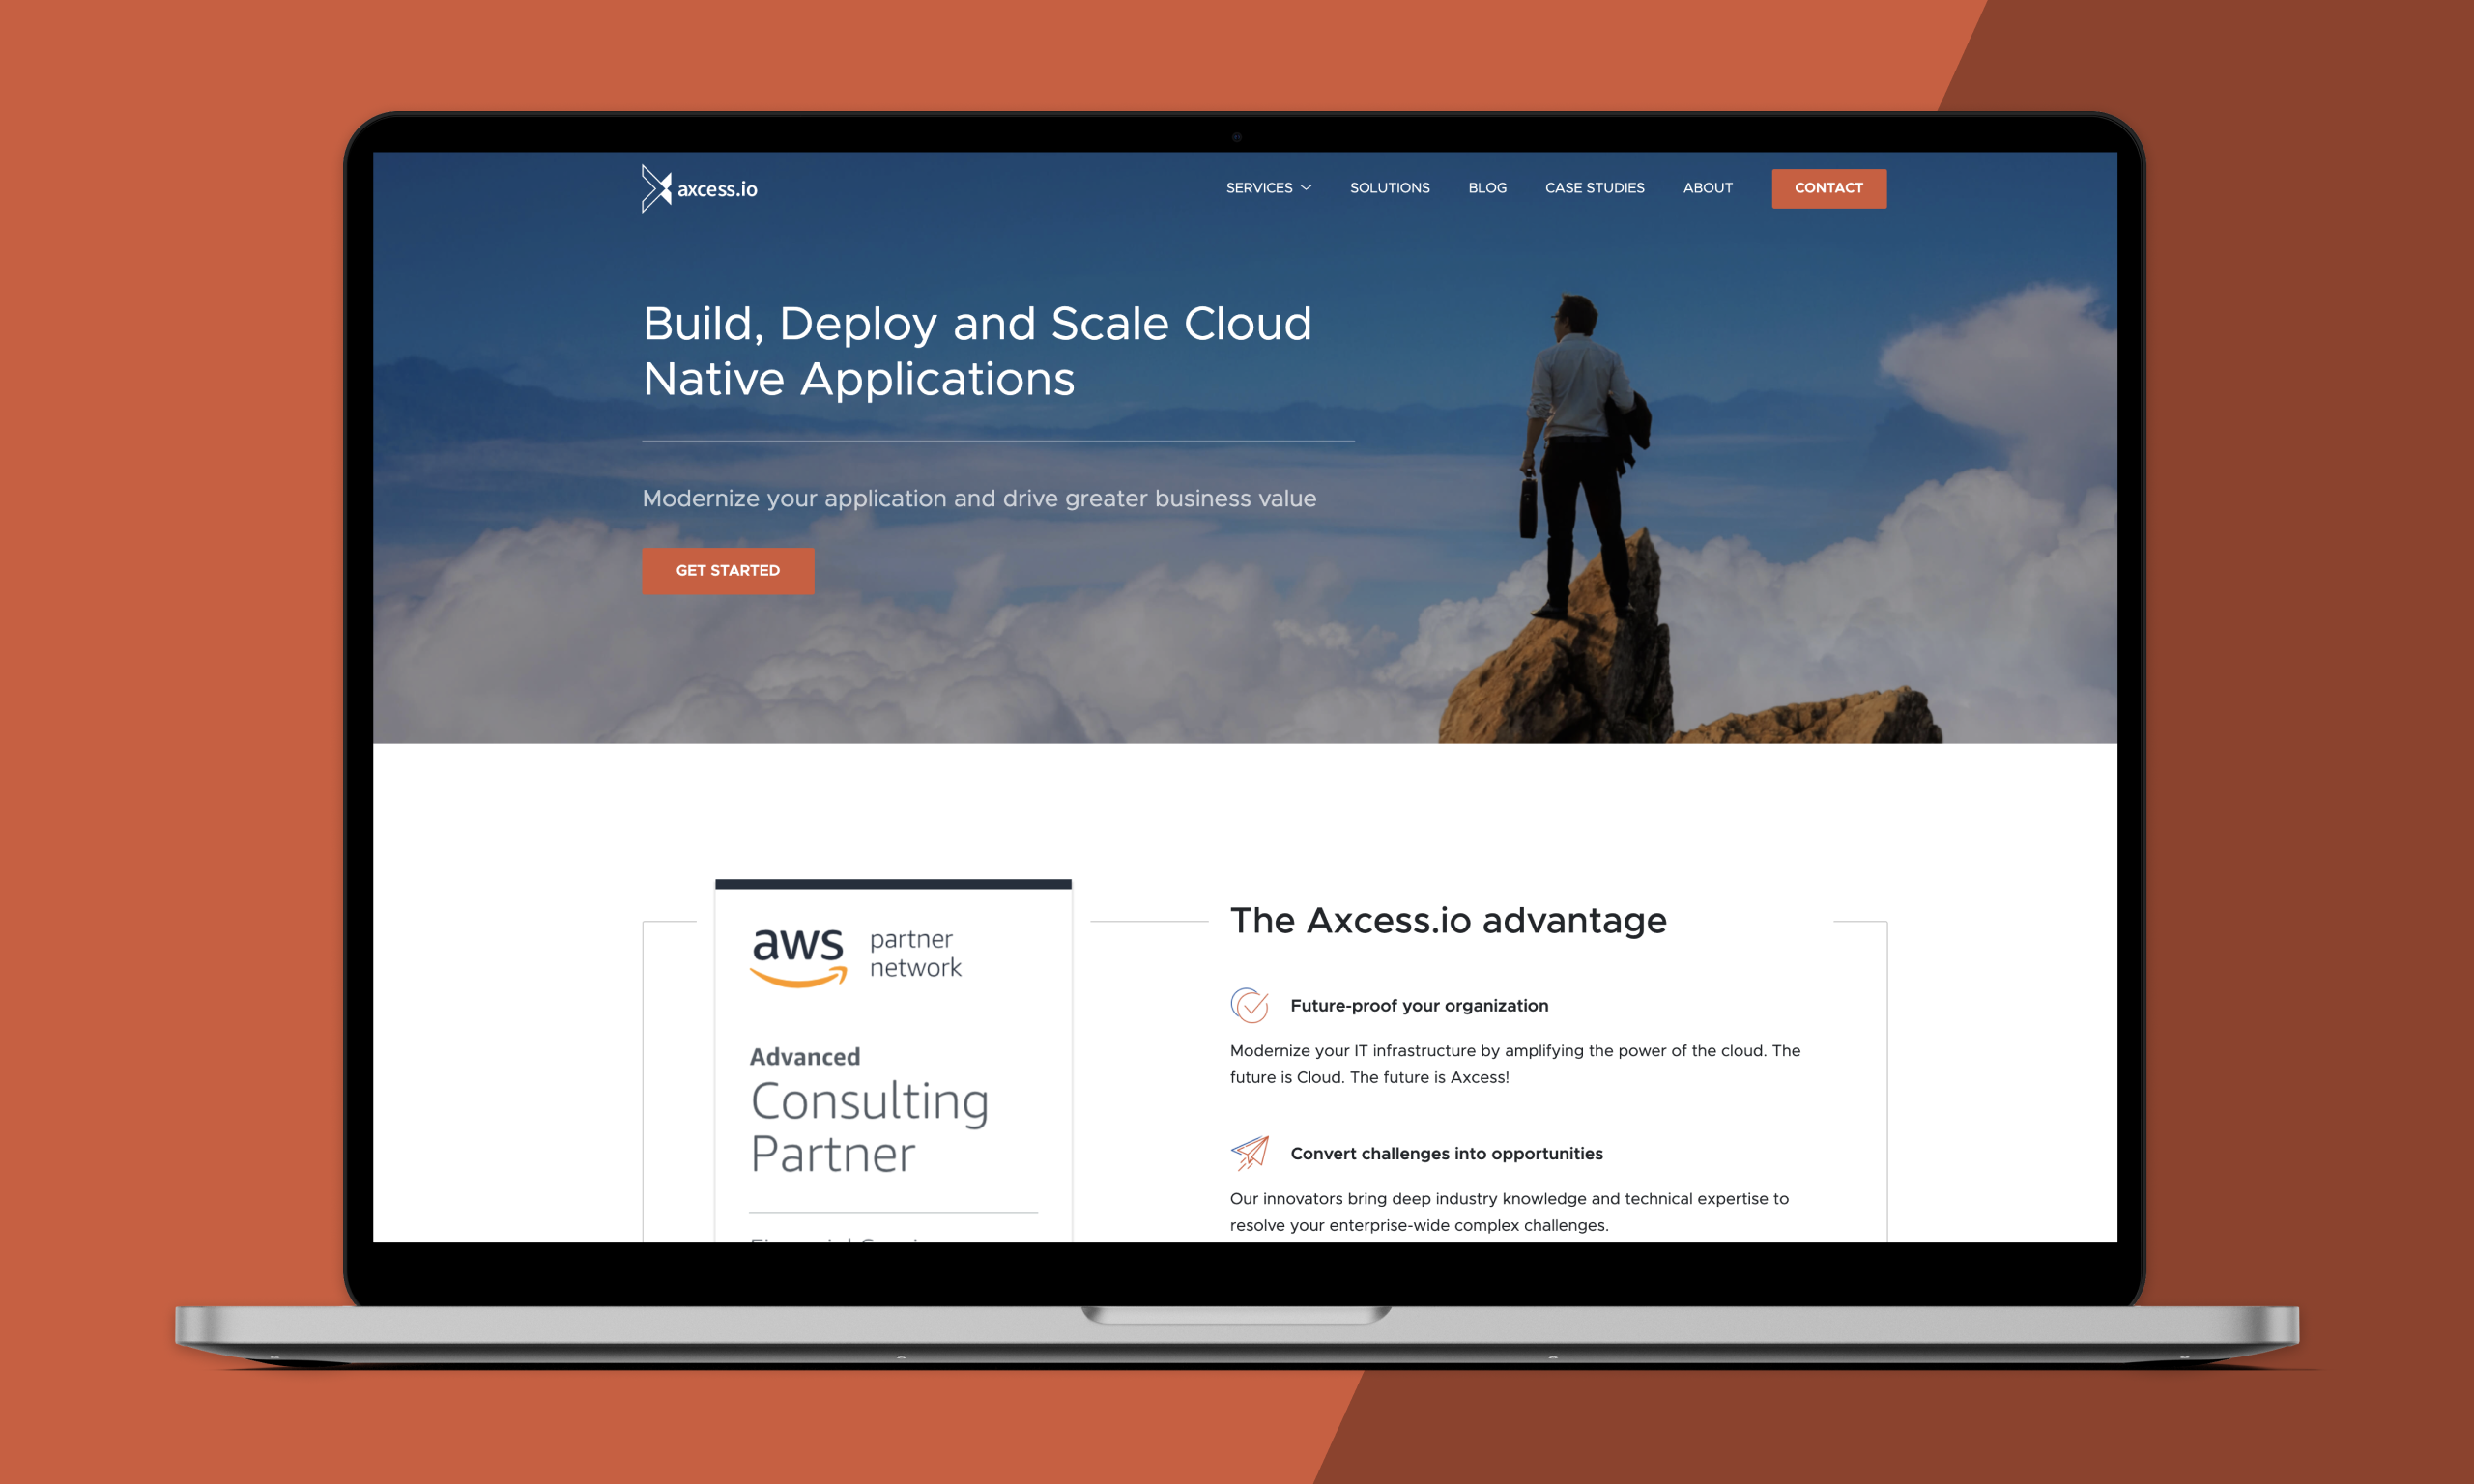 Axcess.io - Modernise your IT infrastructure by amplifying the power of the cloud